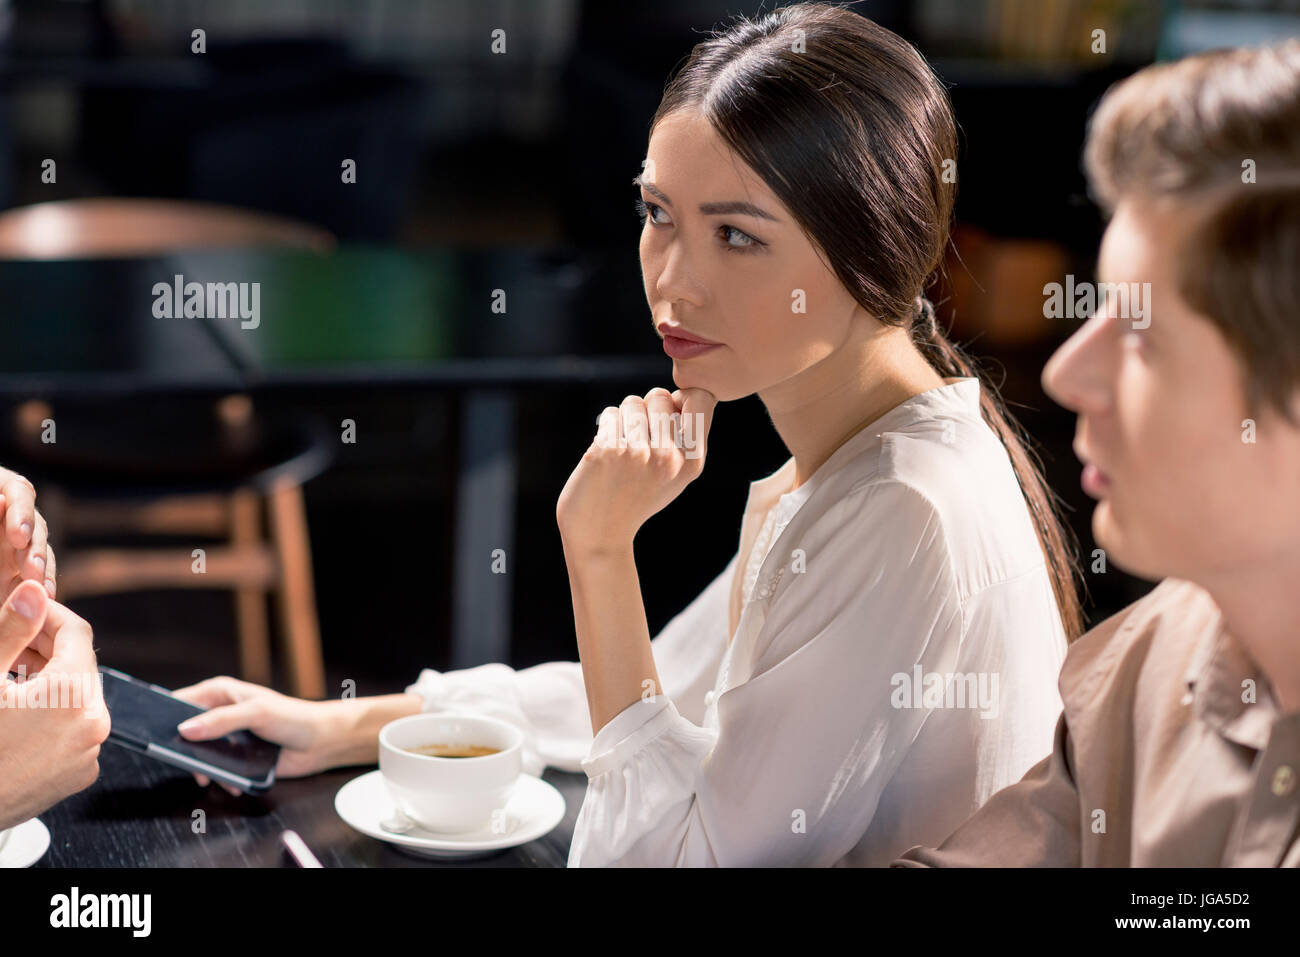 business team on meeting discussing project in cafe, business lunch concept - Stock Image